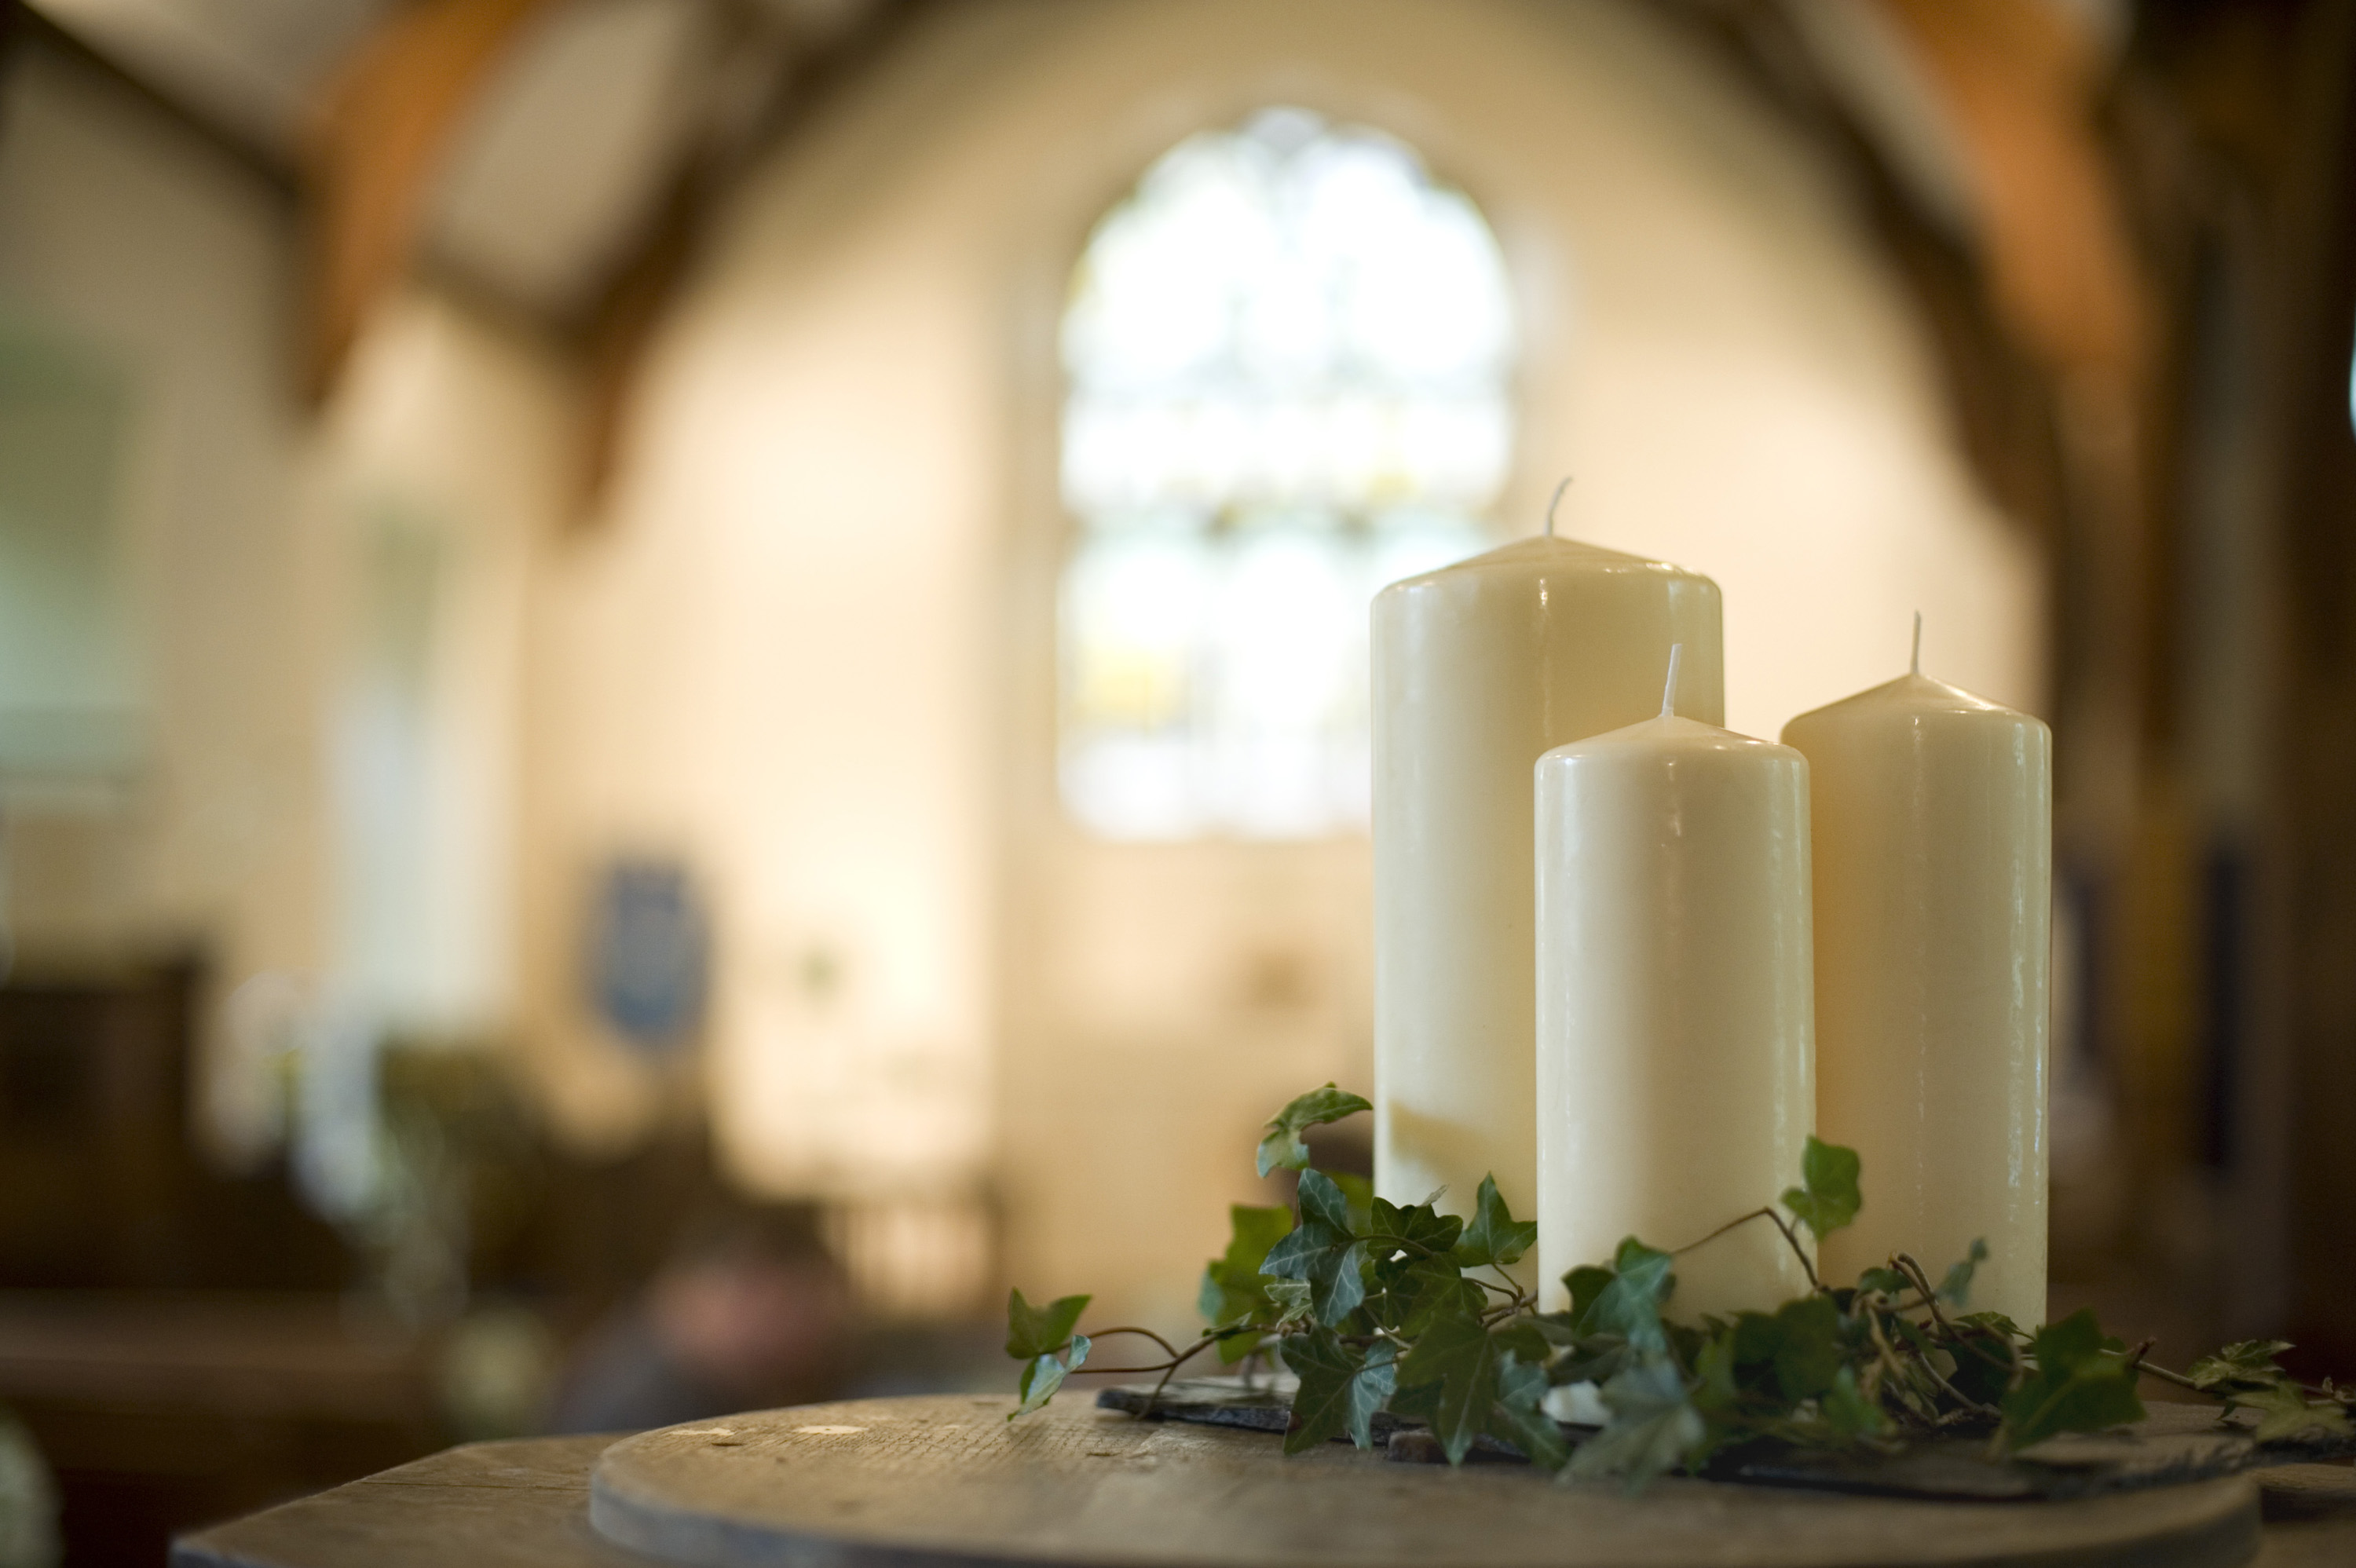 Church Candles Church Candles 2494 Stockarch Free Stock Photos